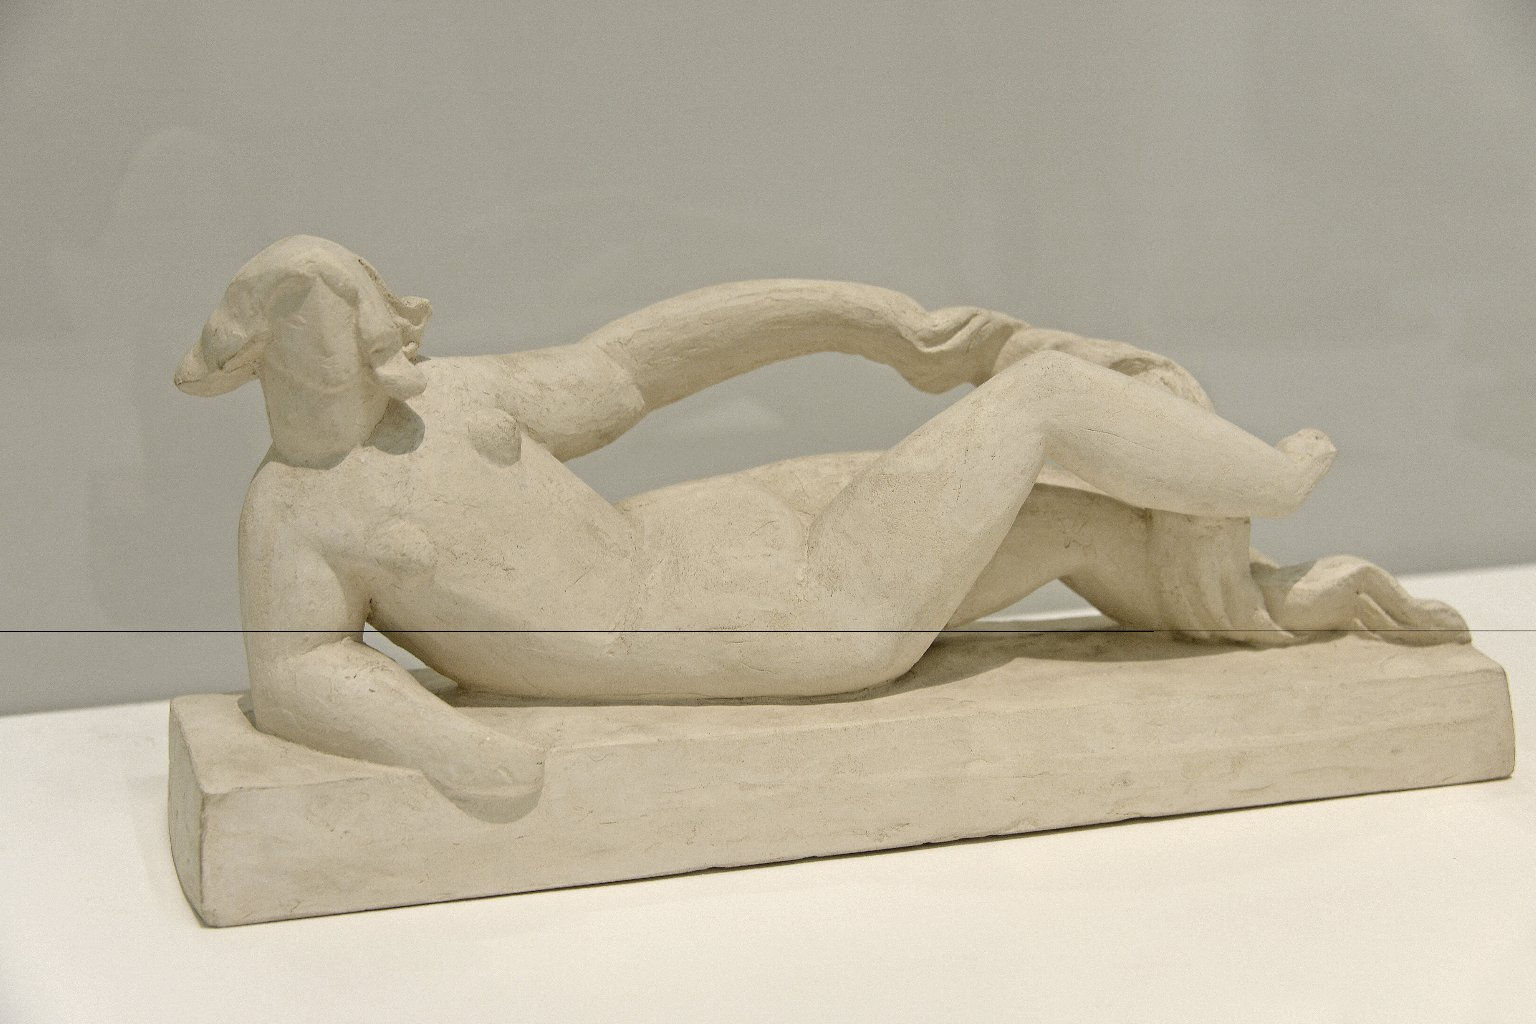 Nus [collection of small nude maquettes]